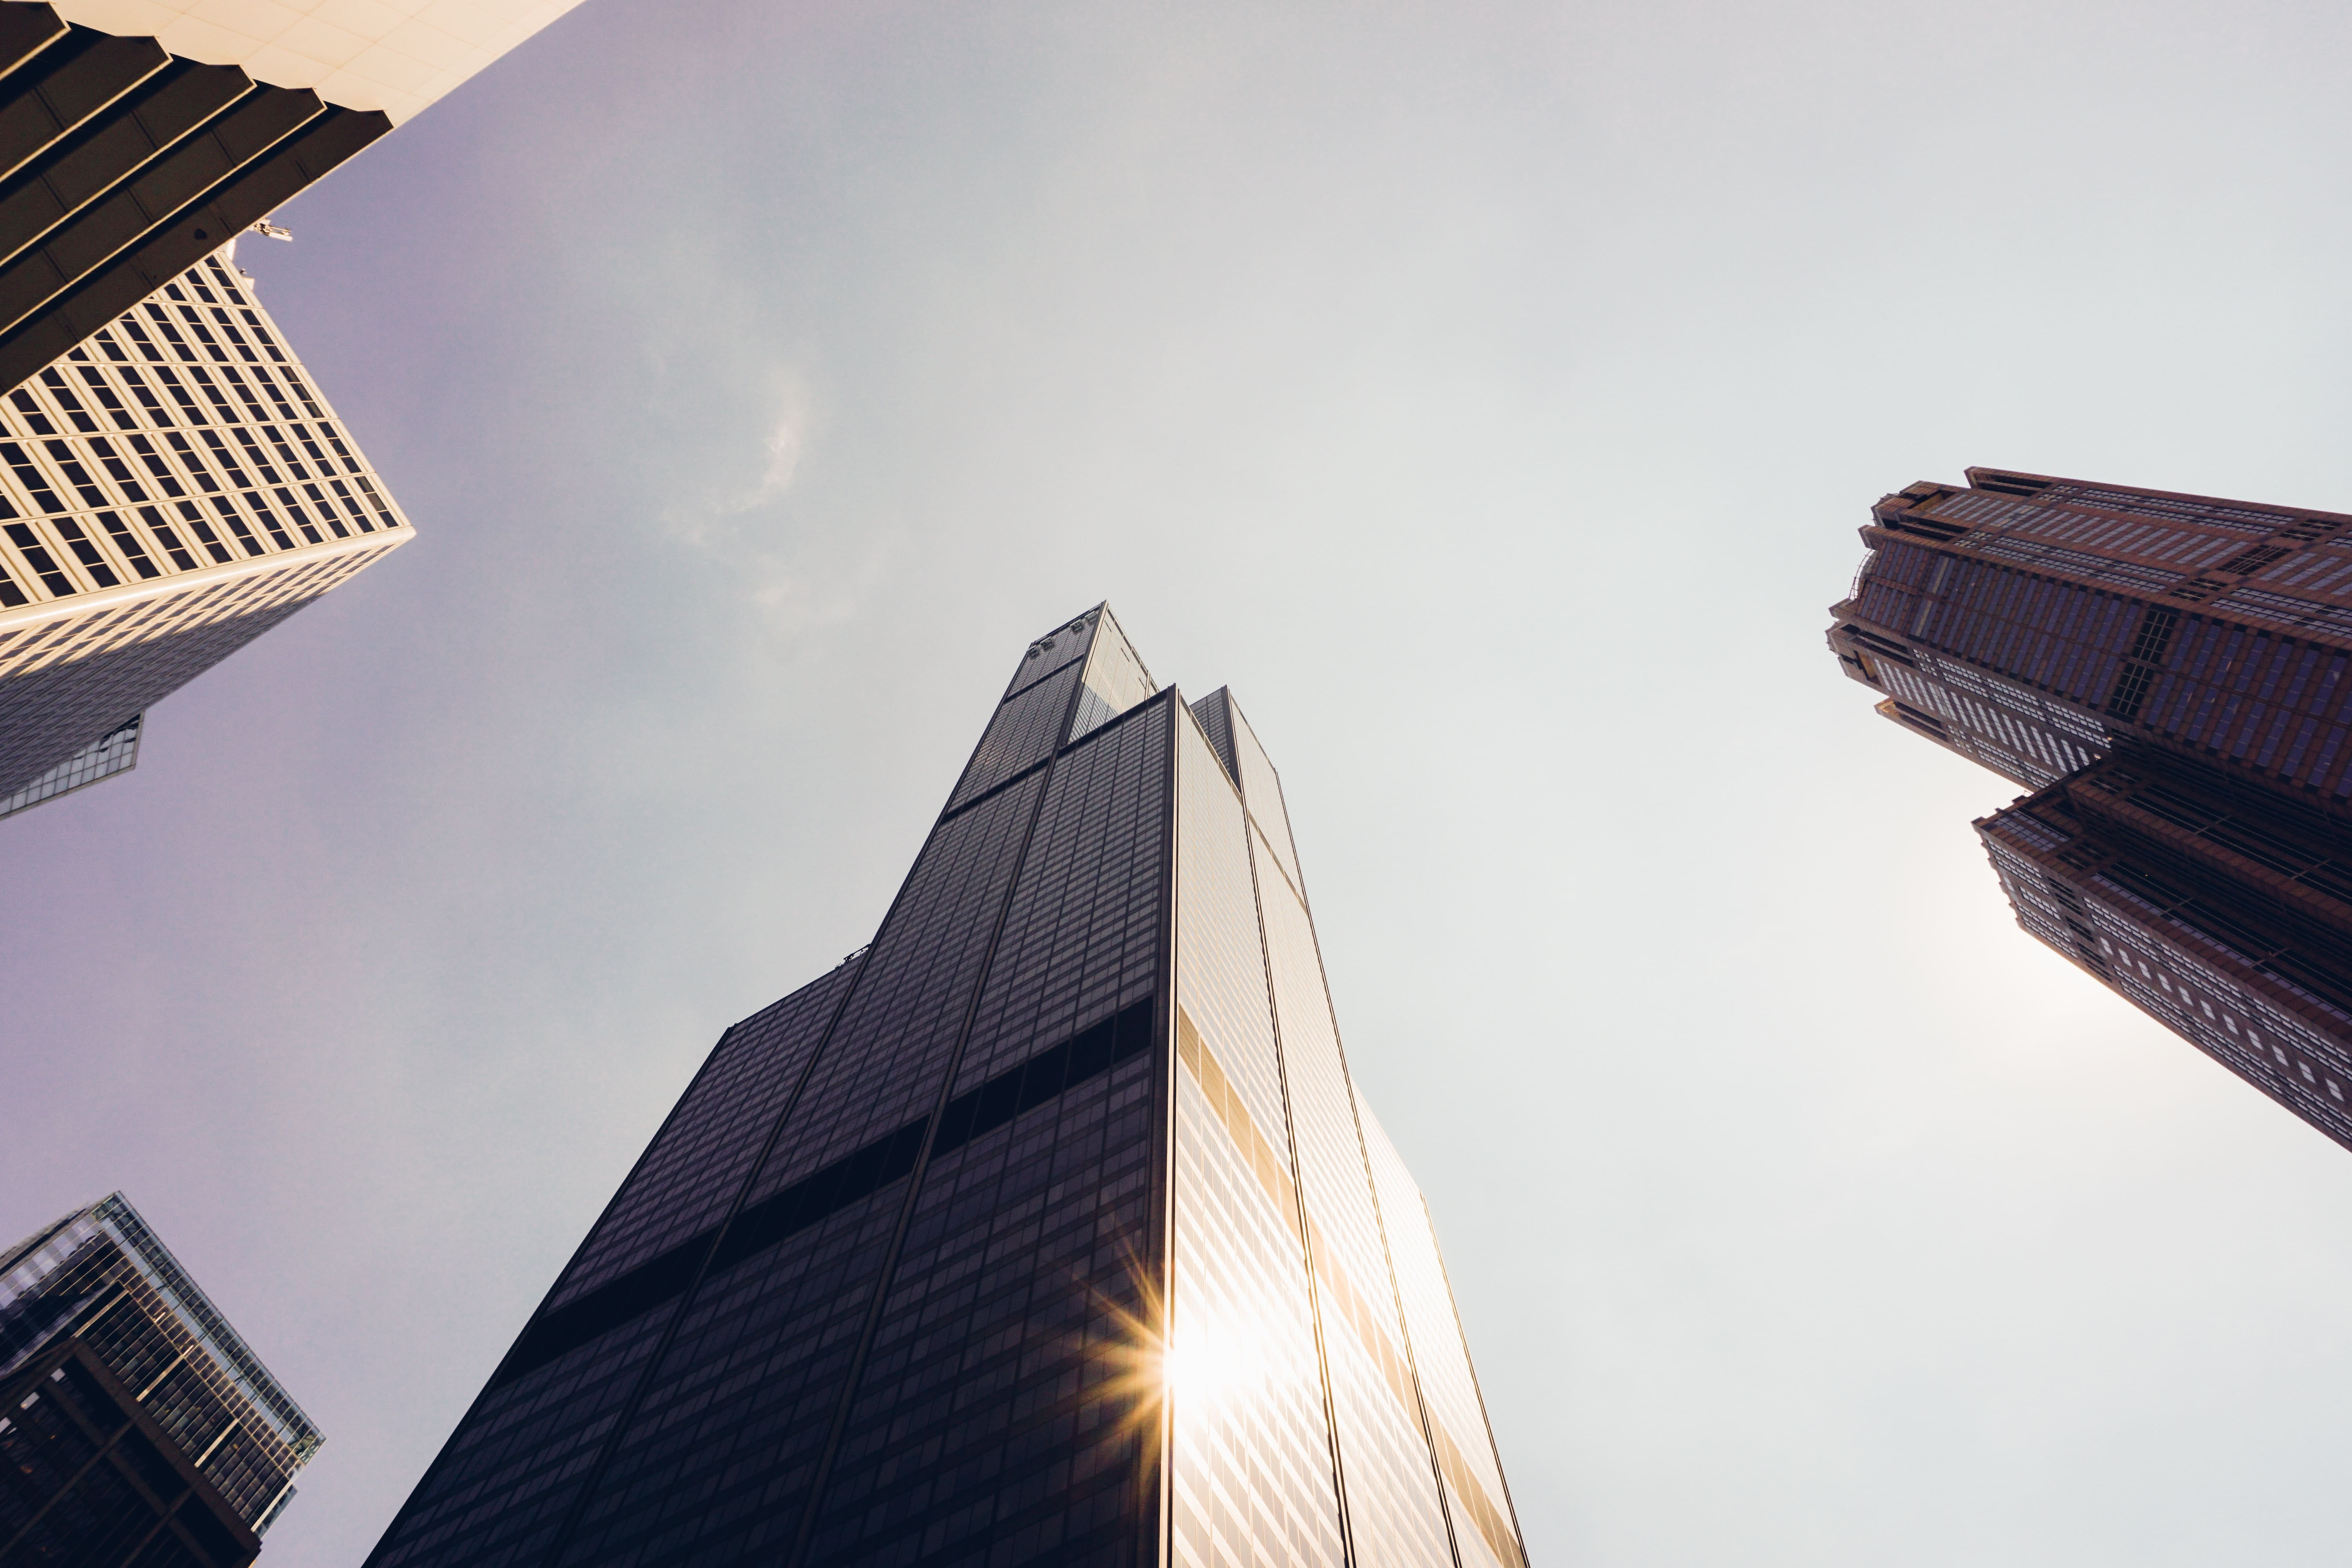 willis-tower-upward-view-with-sun-flare